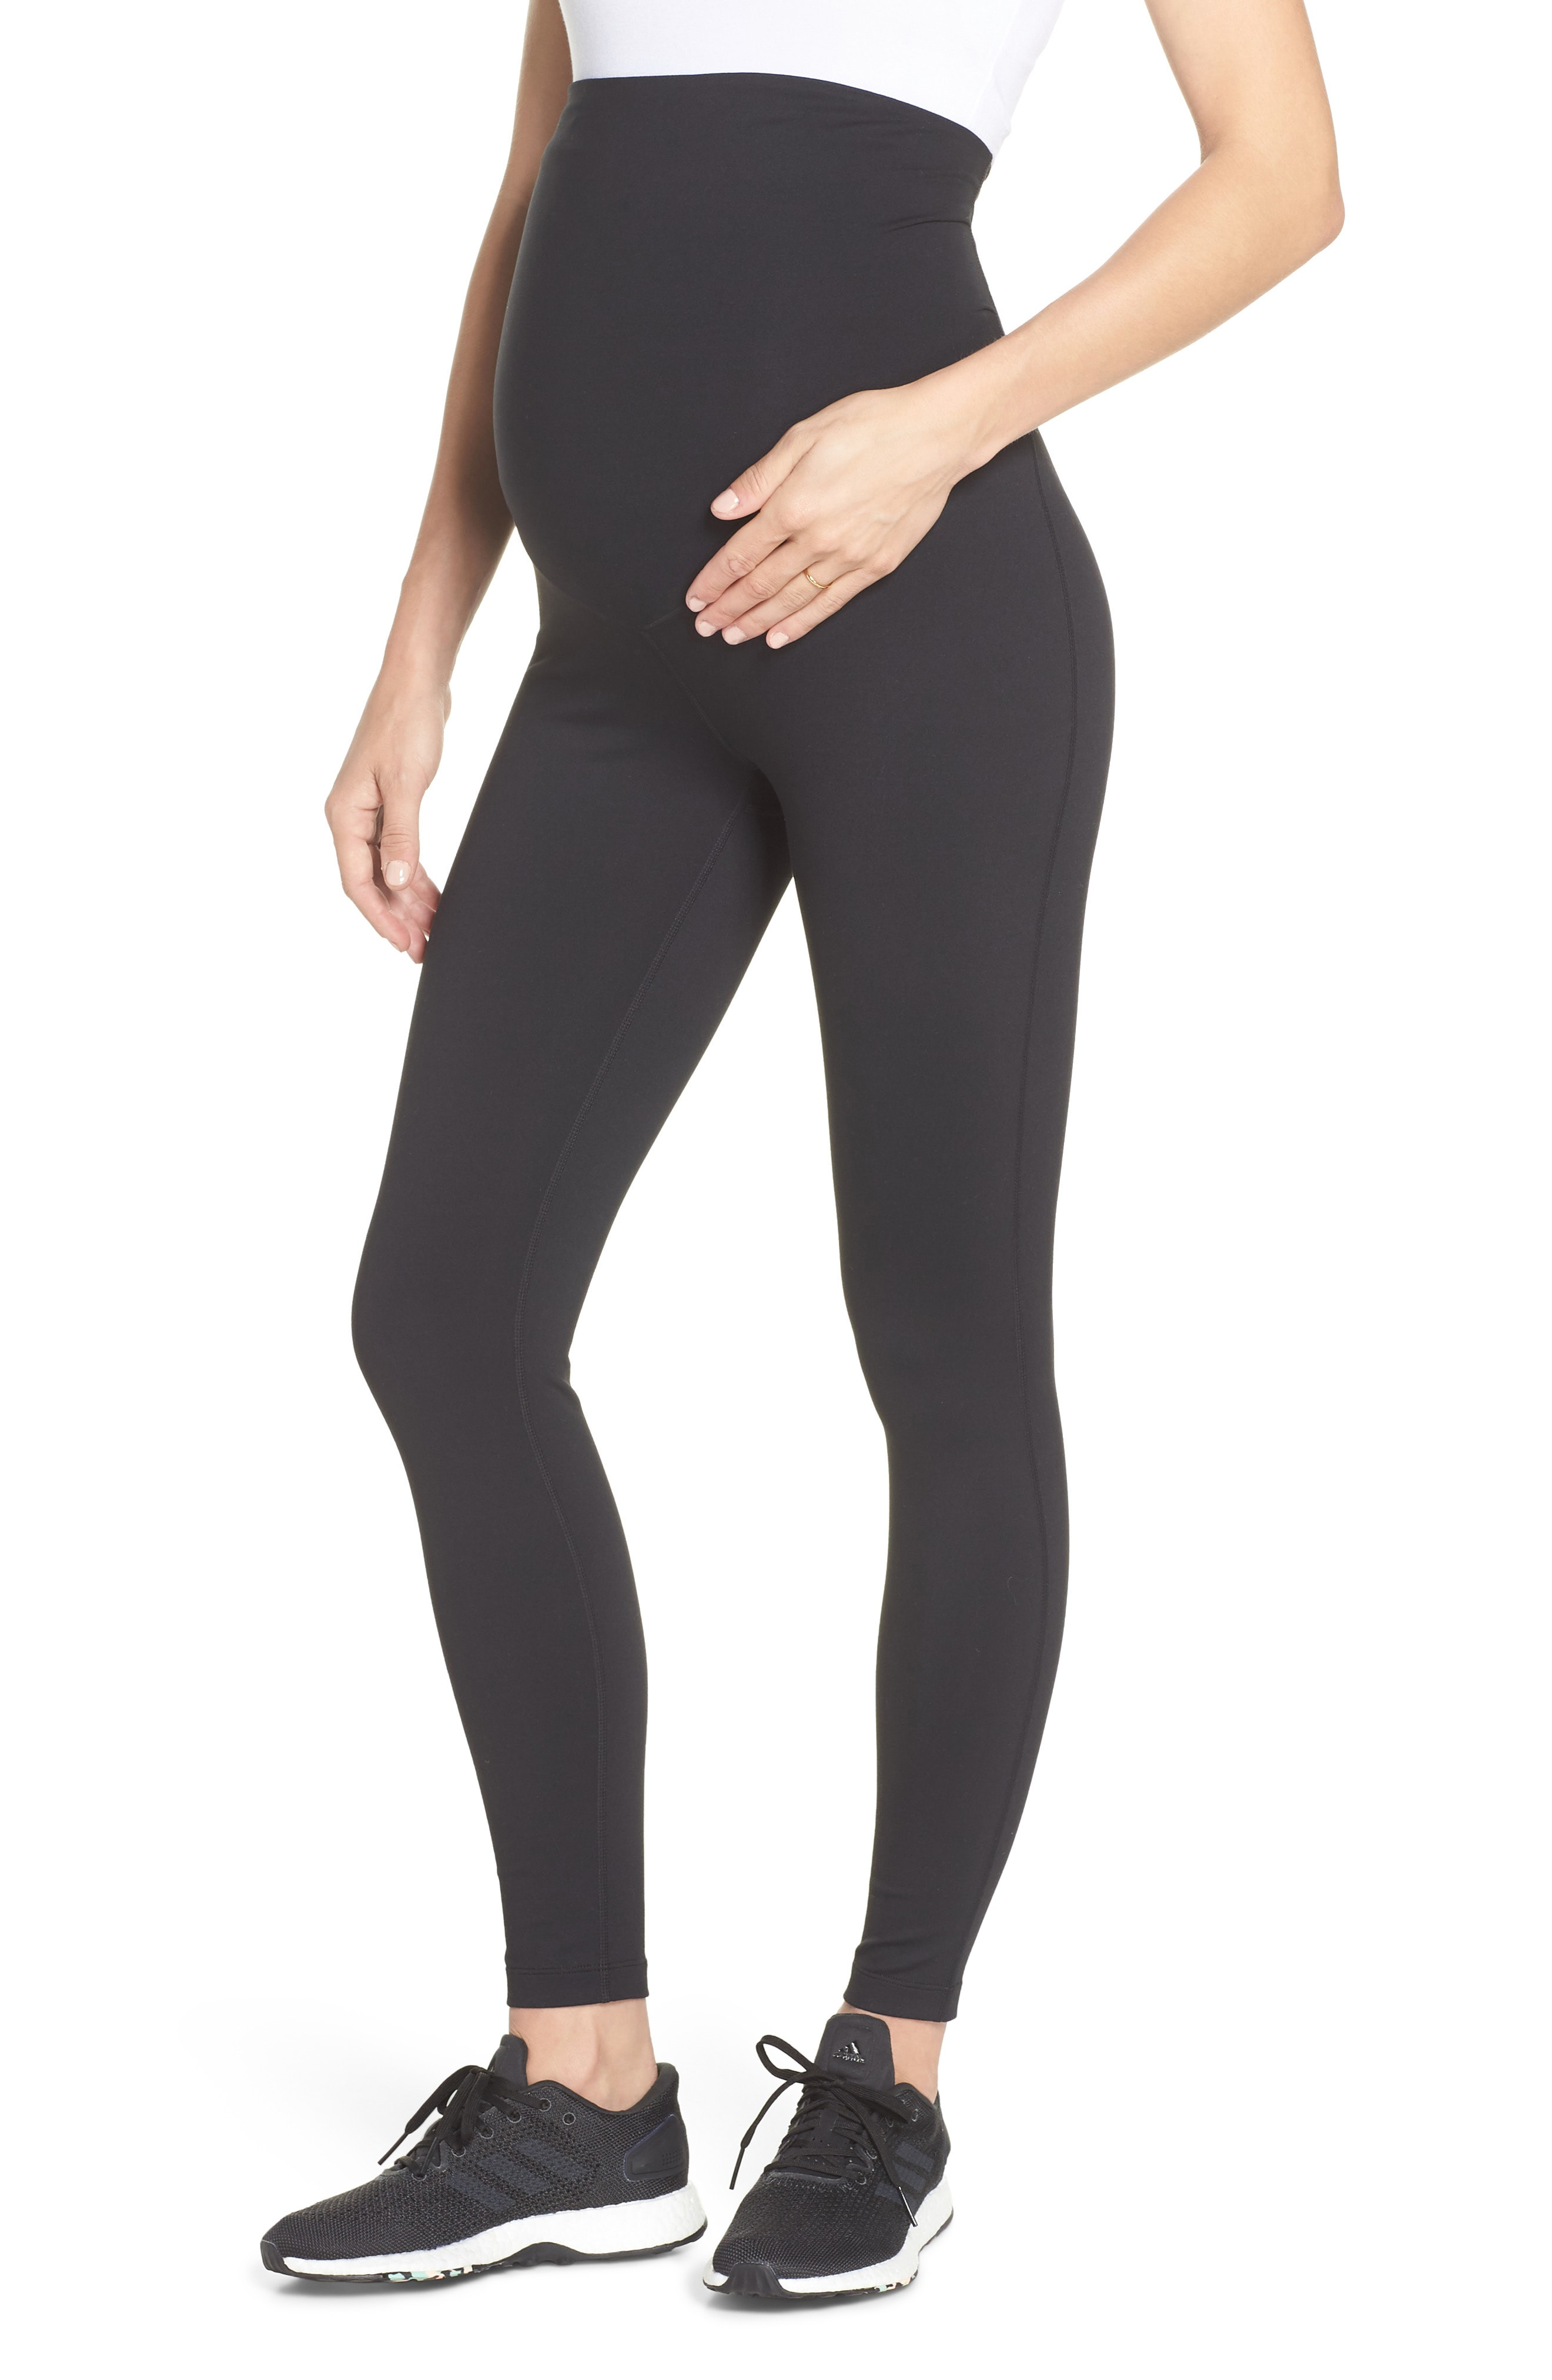 Buy comfortable maternity   pants that will help you while pregnancy